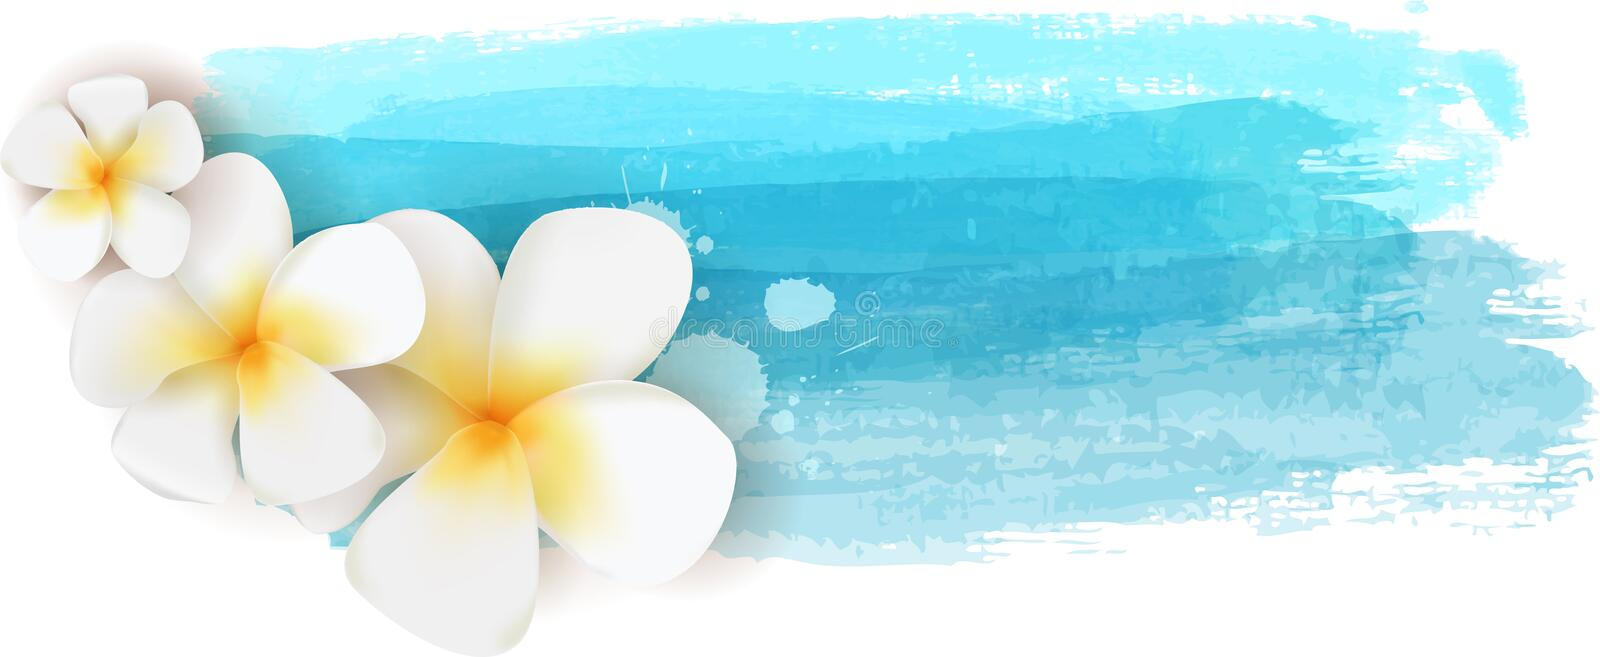 Plumeria on watercolor banner royalty free illustration